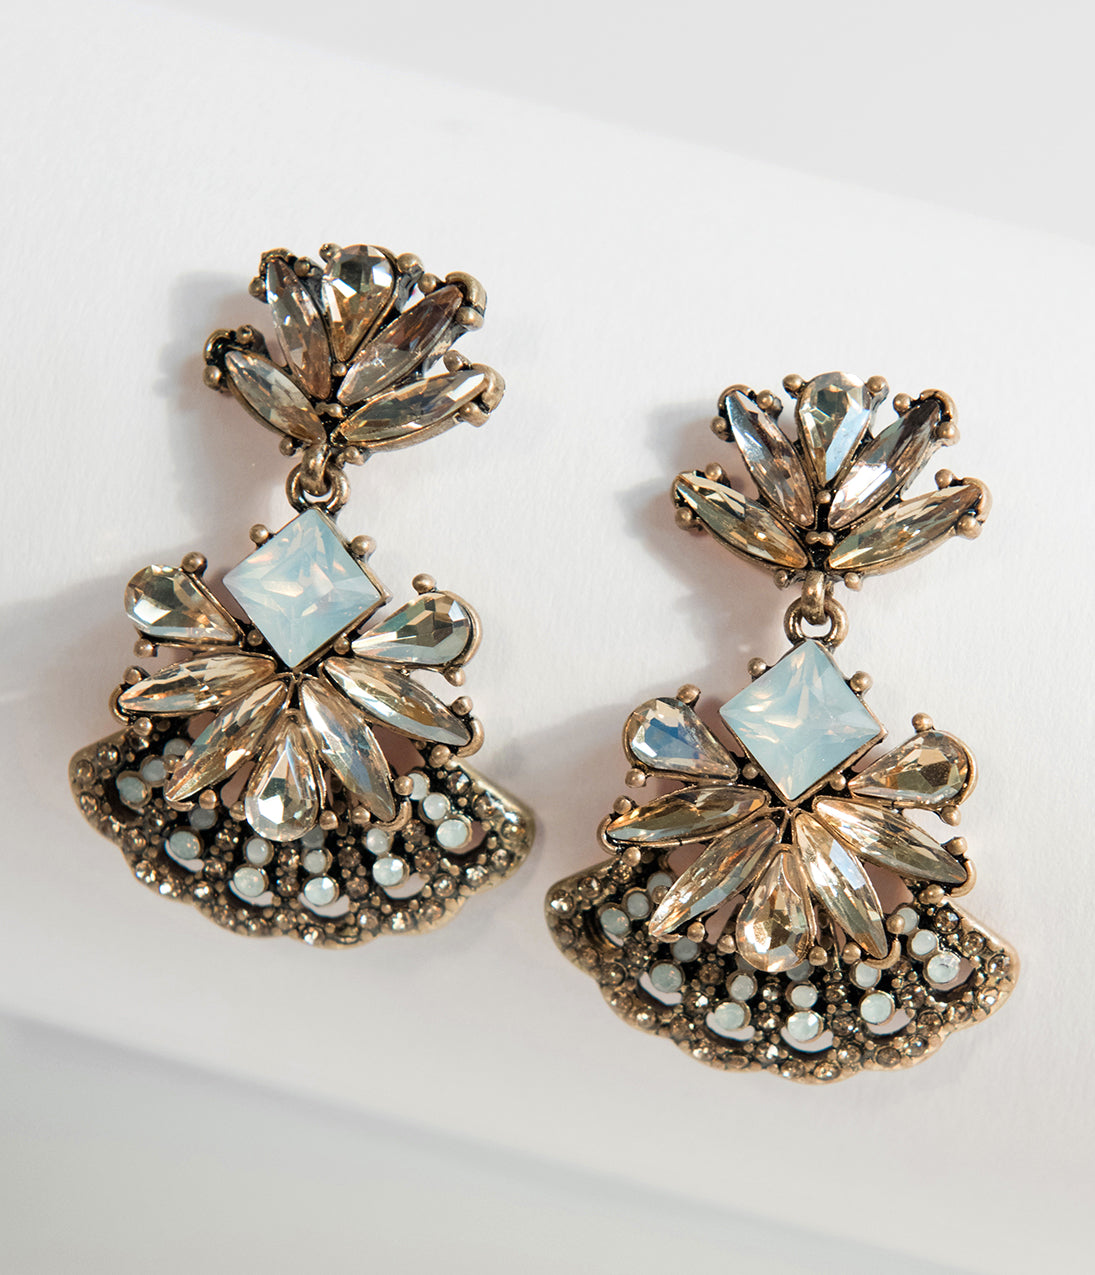 1920s Flapper Costume : How to Guide Antique Gold  Milky Gemstones Chandelier Statement Earrings $26.00 AT vintagedancer.com